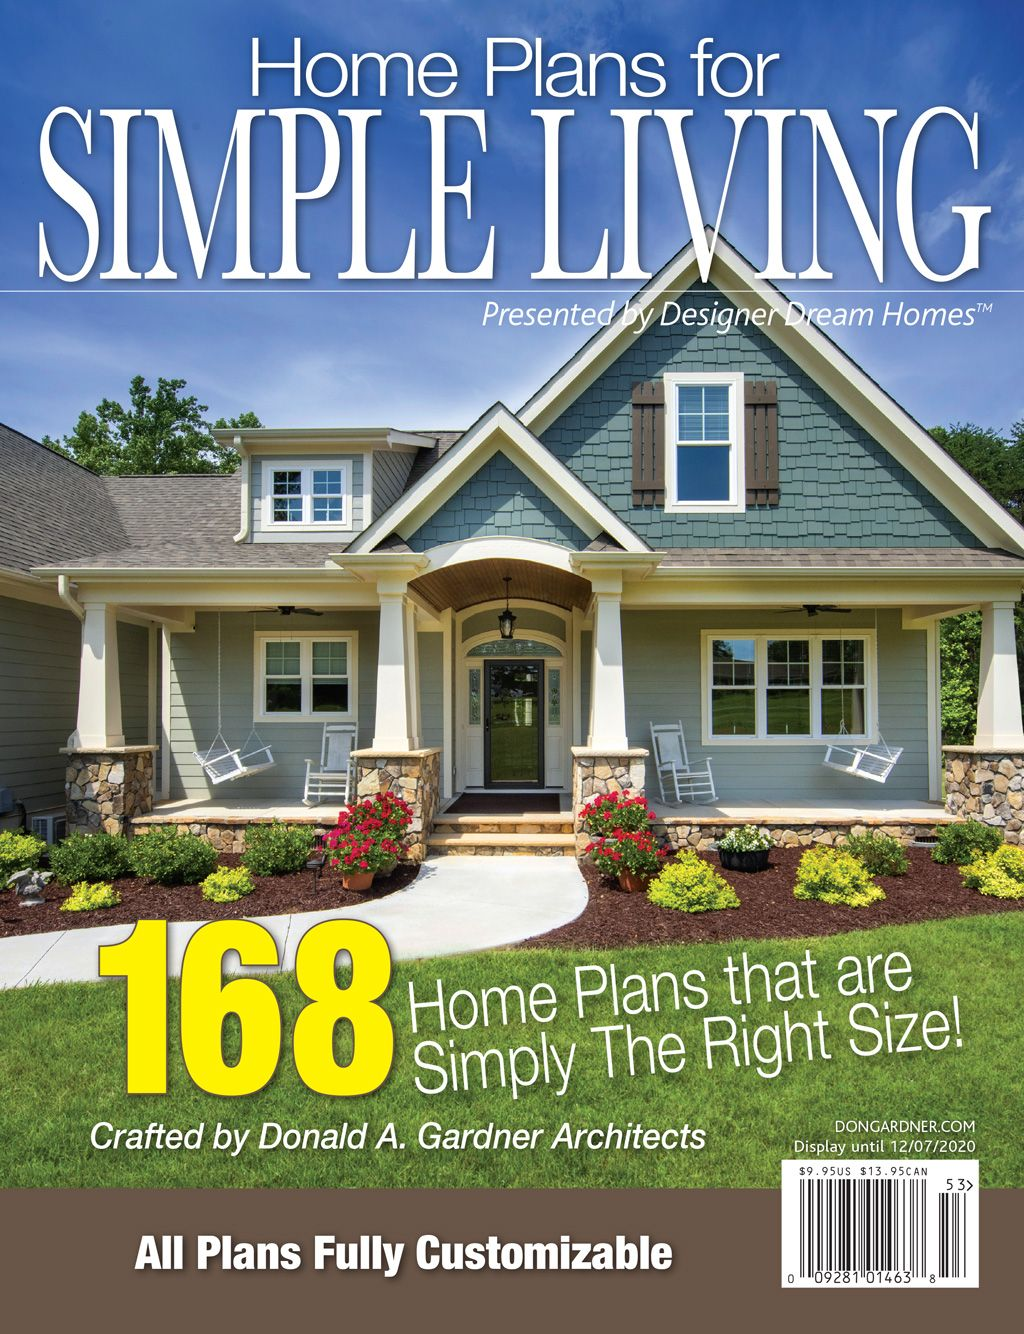 2020 Home Plans for Simple Living